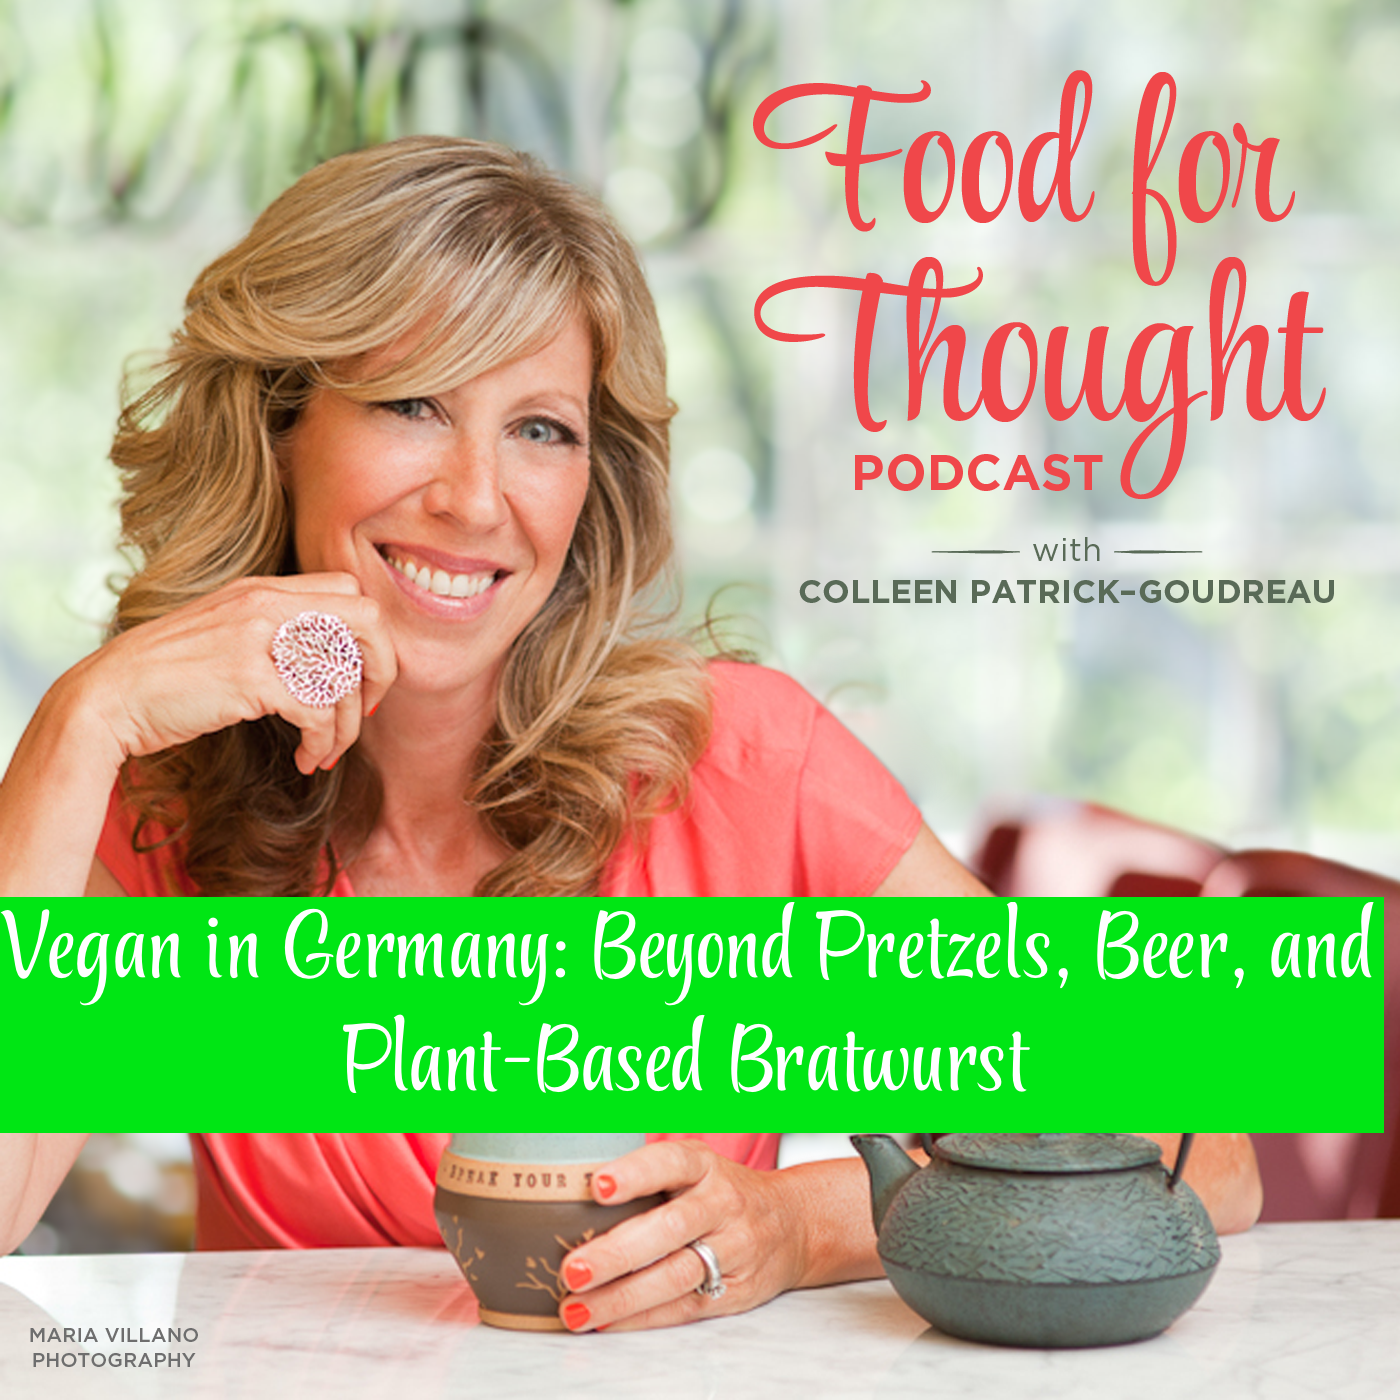 Vegan in Germany: Beyond Pretzels, Beer, and Bratwurst